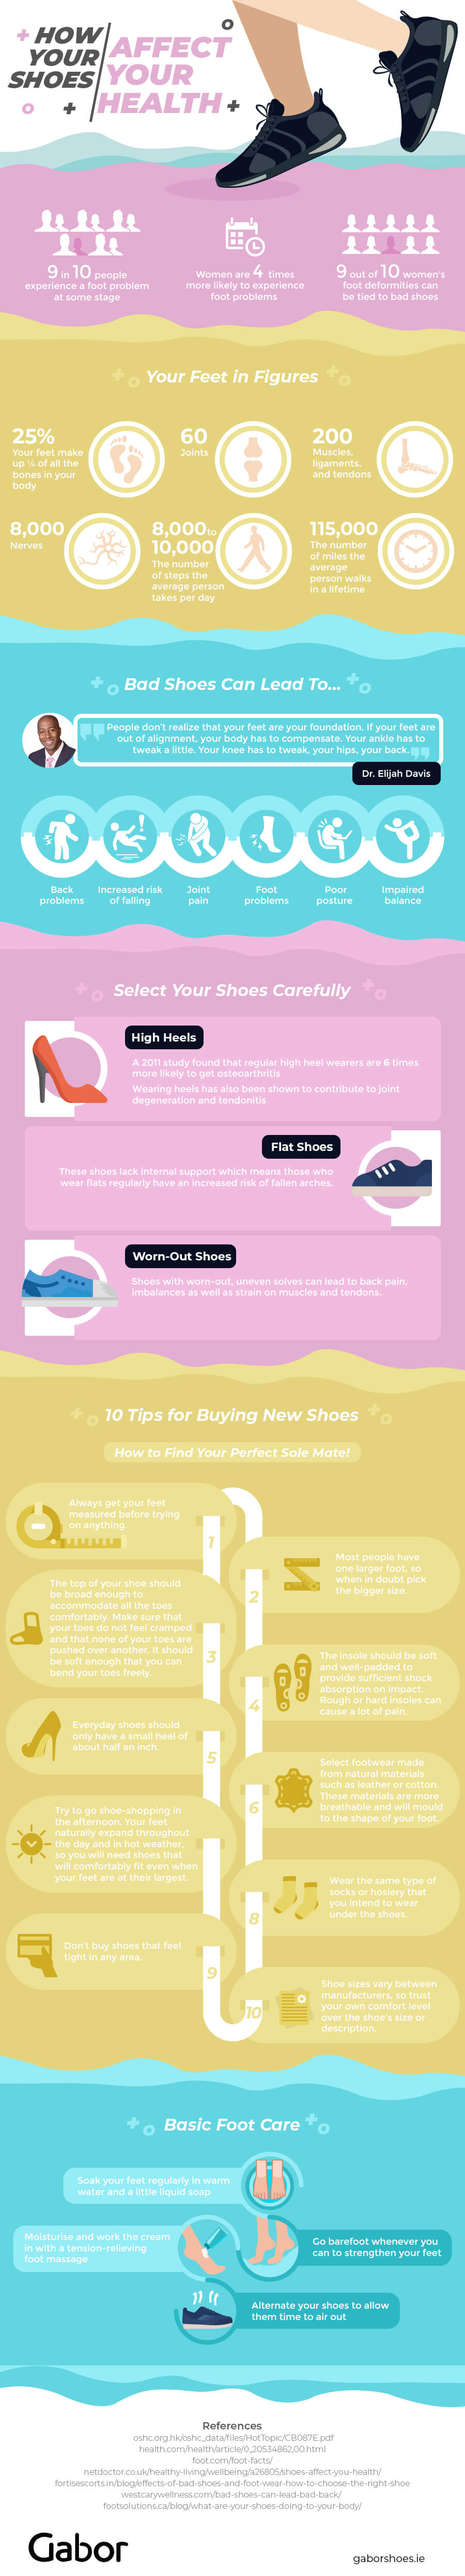 shoes affect your health